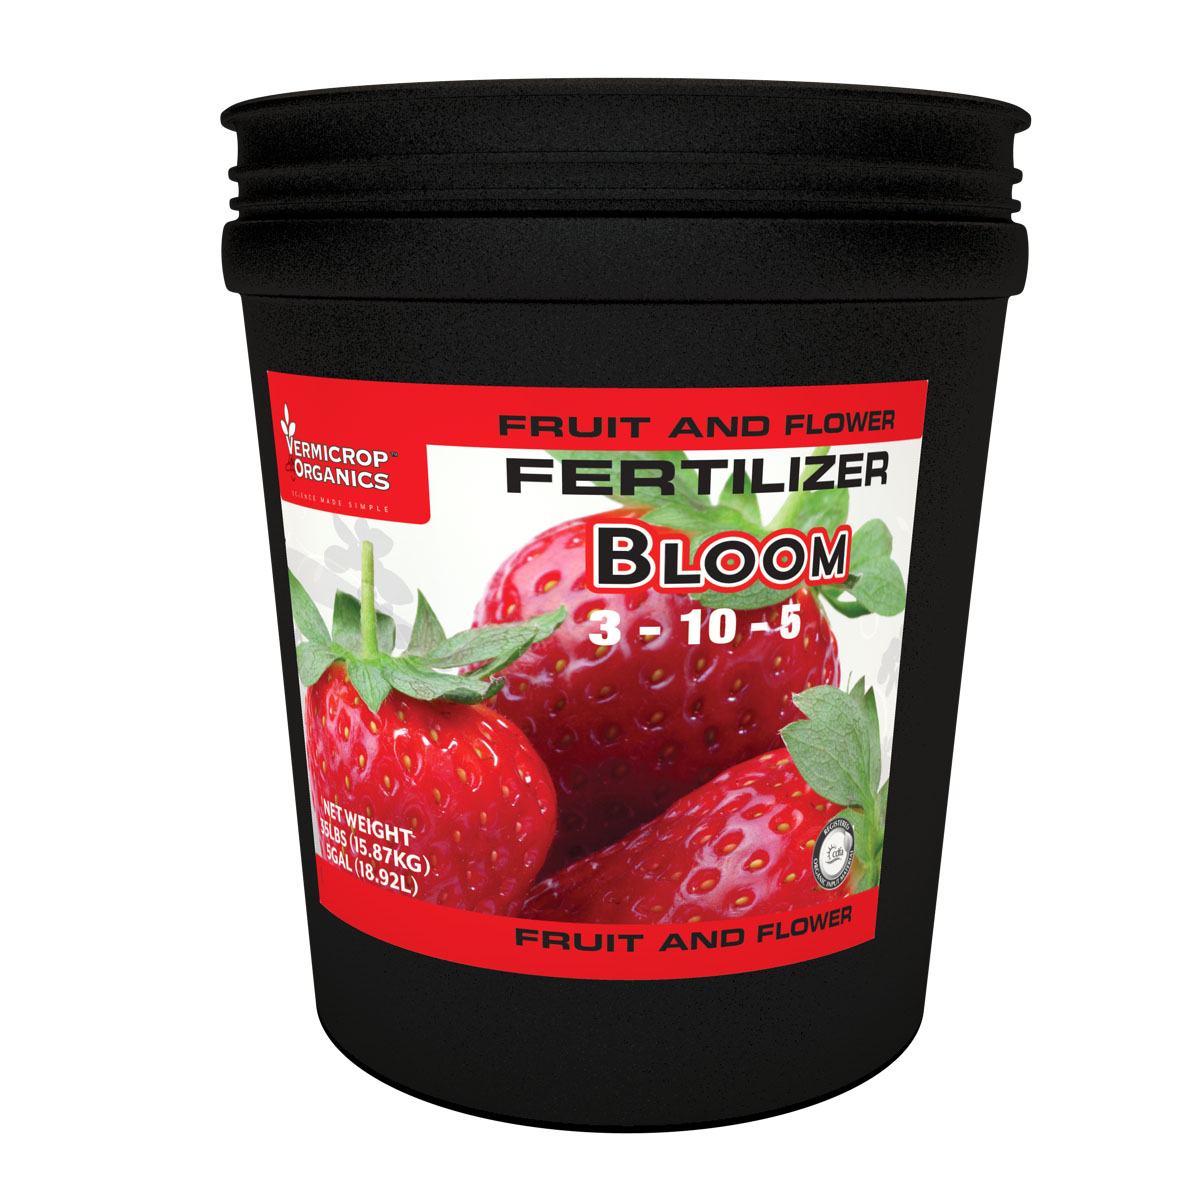 Vermicrop Bloom 3-10-5 Fruit and Flower Fertilizer, 35 LBS (in 5 Gallon pail)